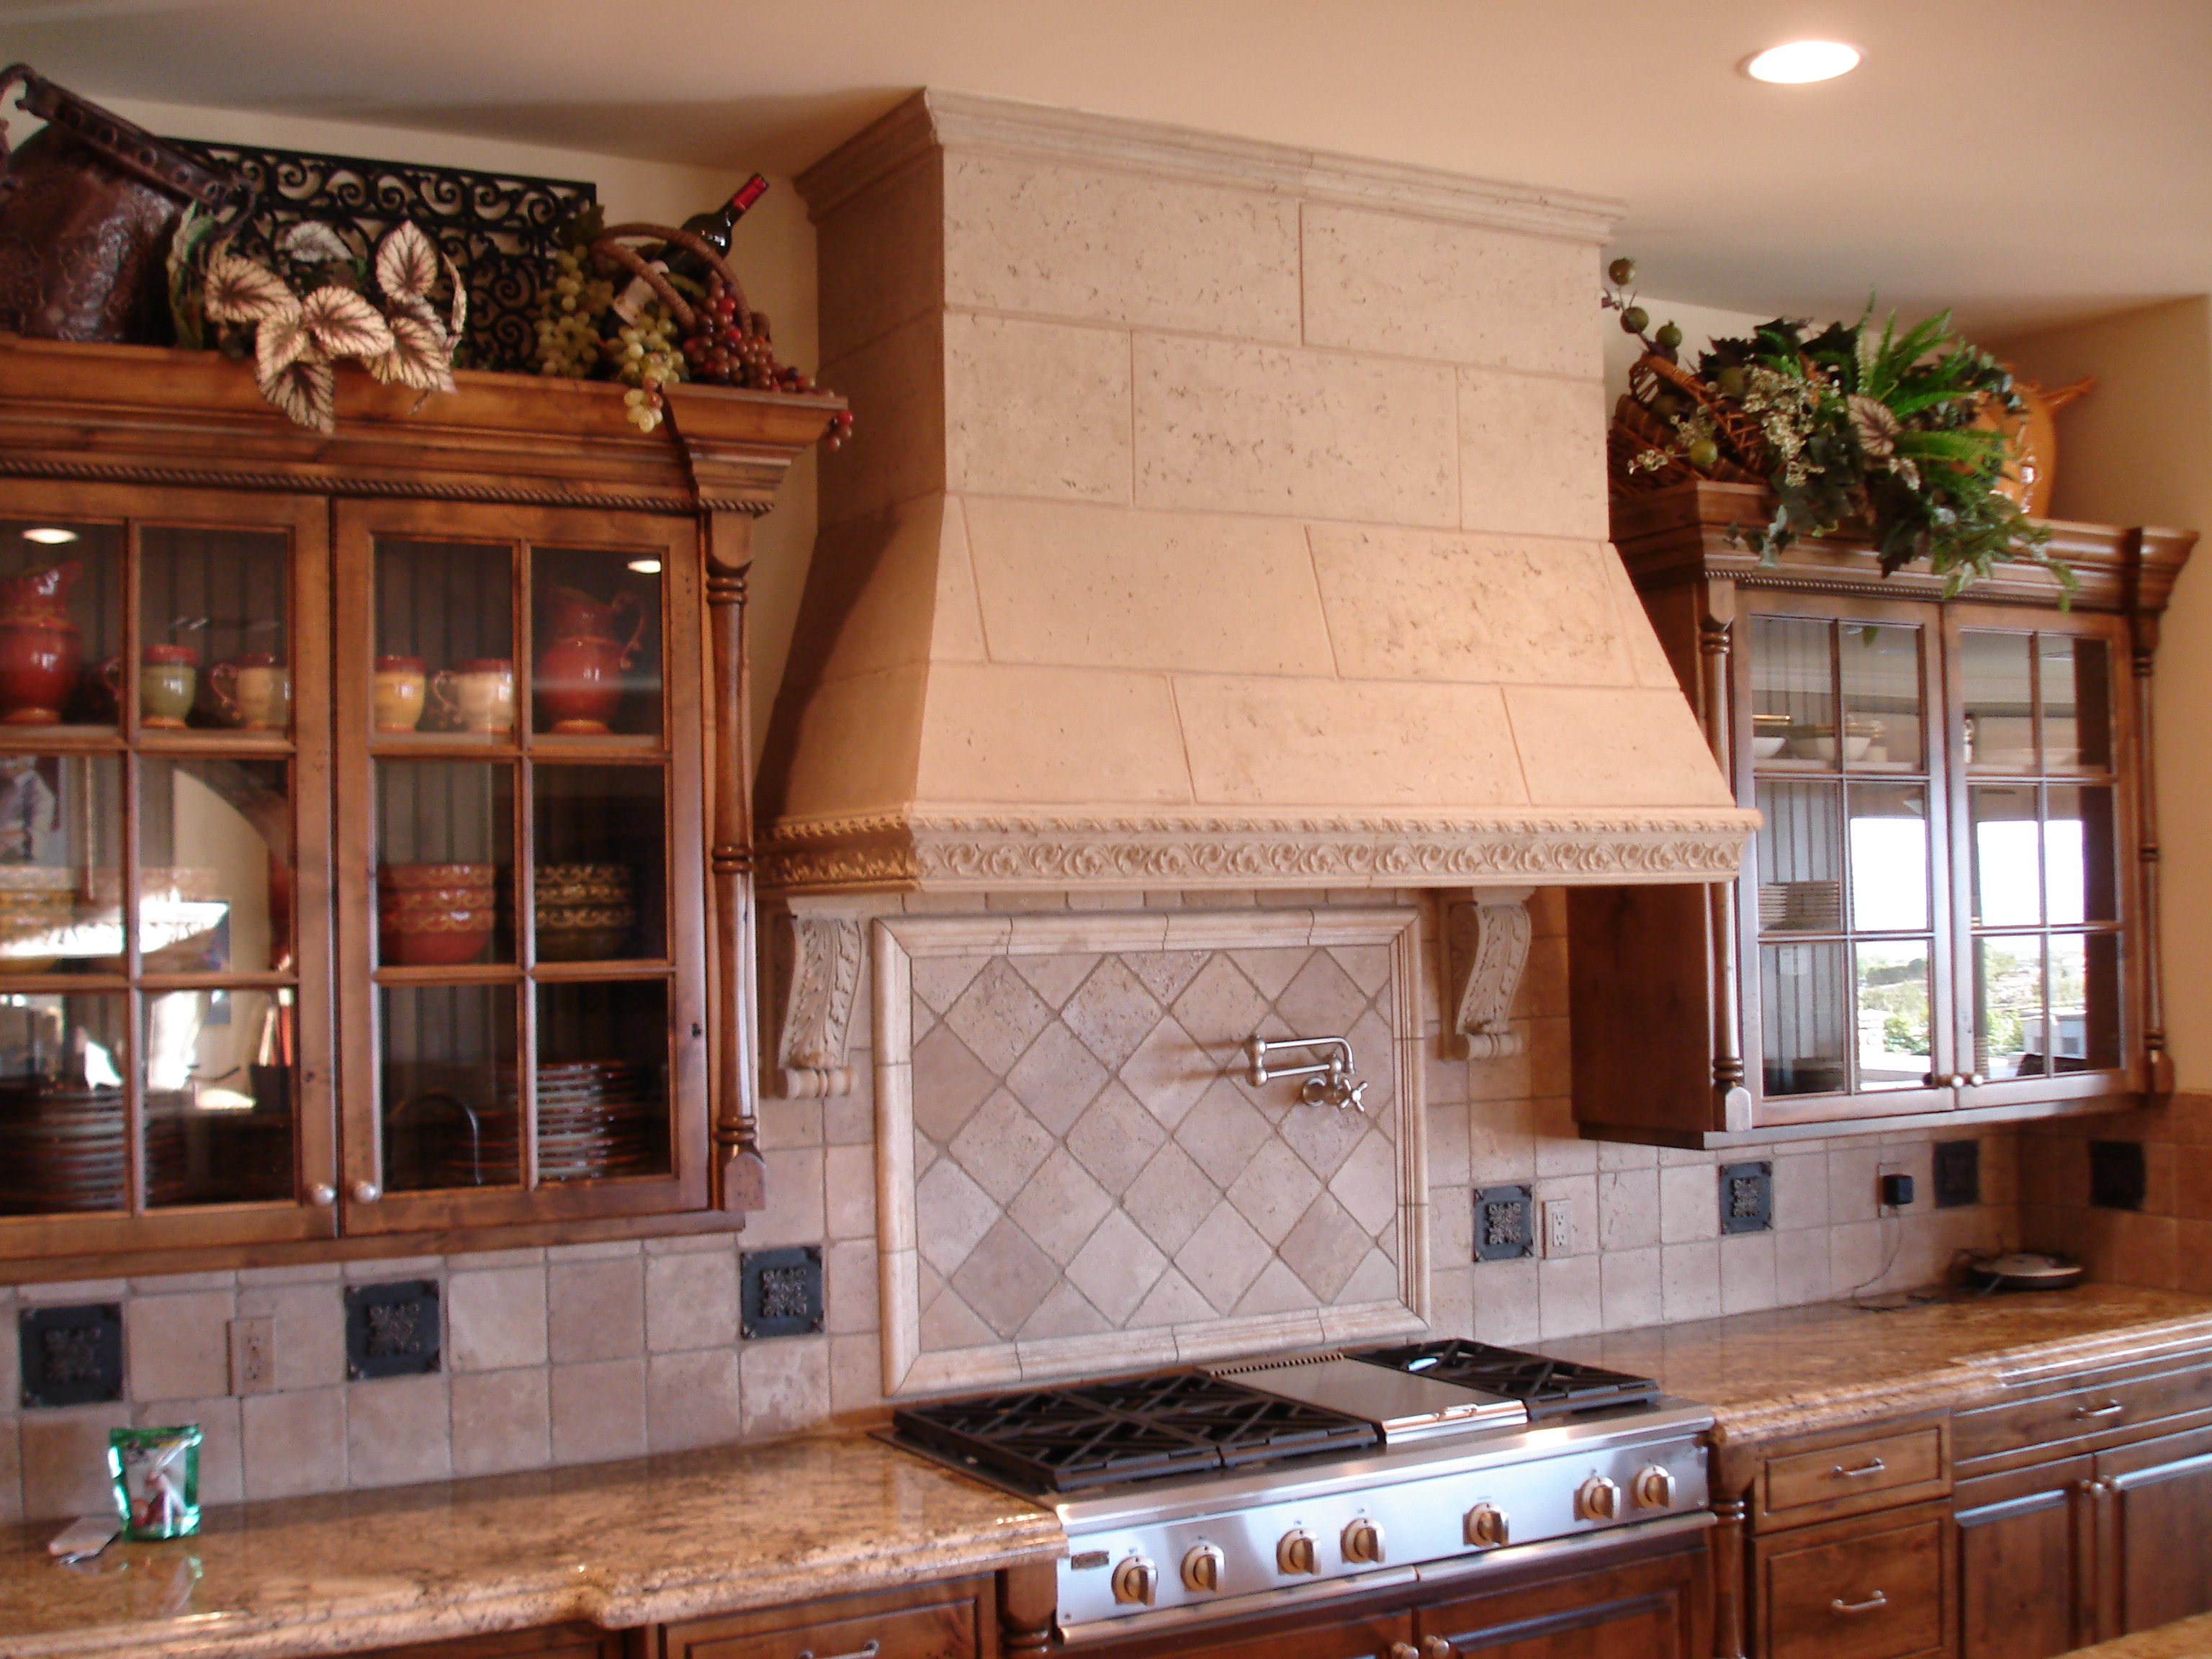 Dress up your Kitchen with a decorative dress hood - Realm ...